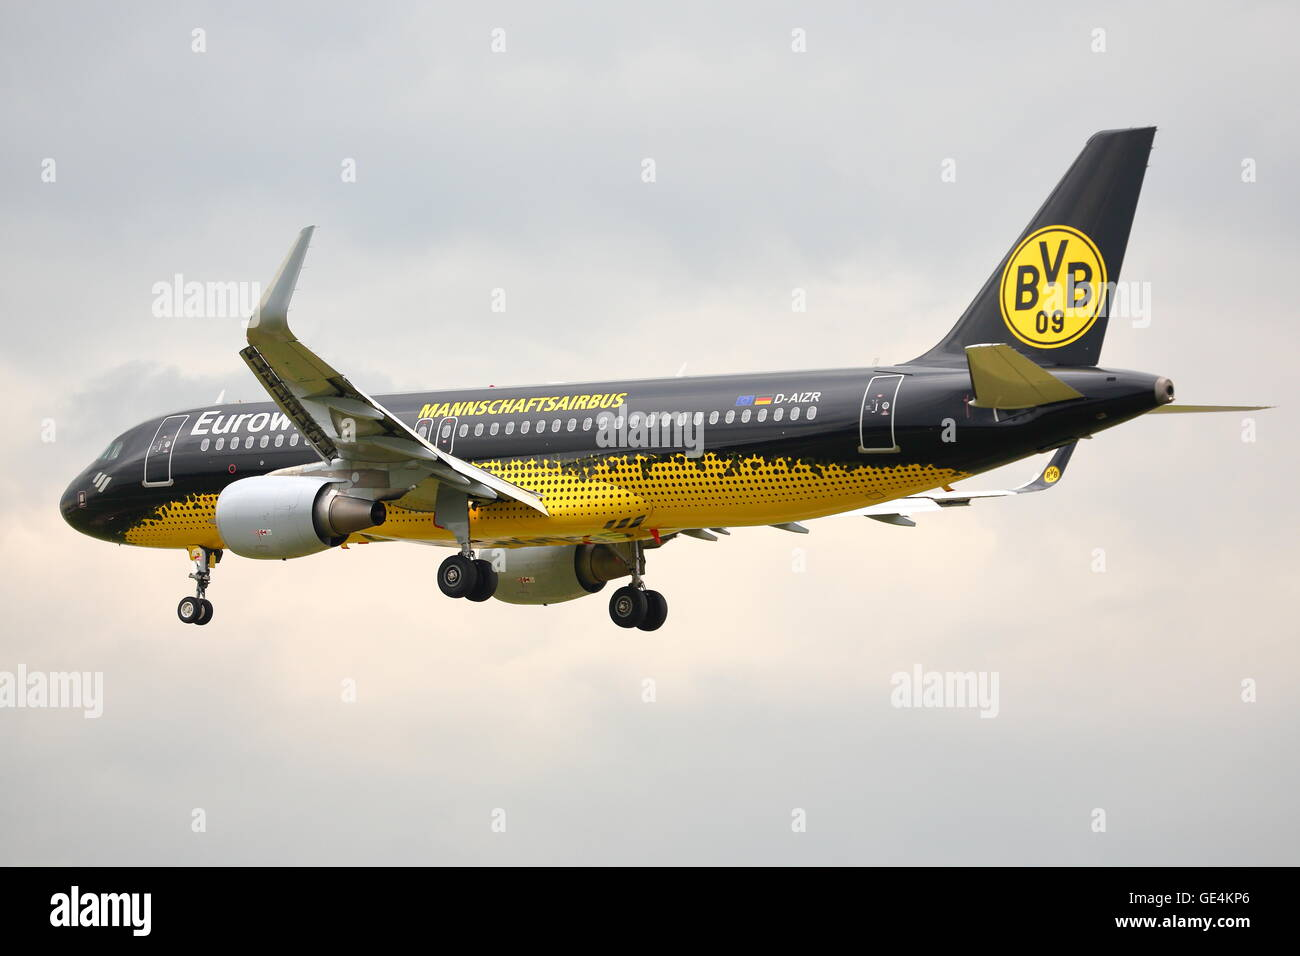 Eurowings Airbus A320-200 D-AIZR in Borussia Dortmund livery landing at London Heathrow Airport, UK - Stock Image